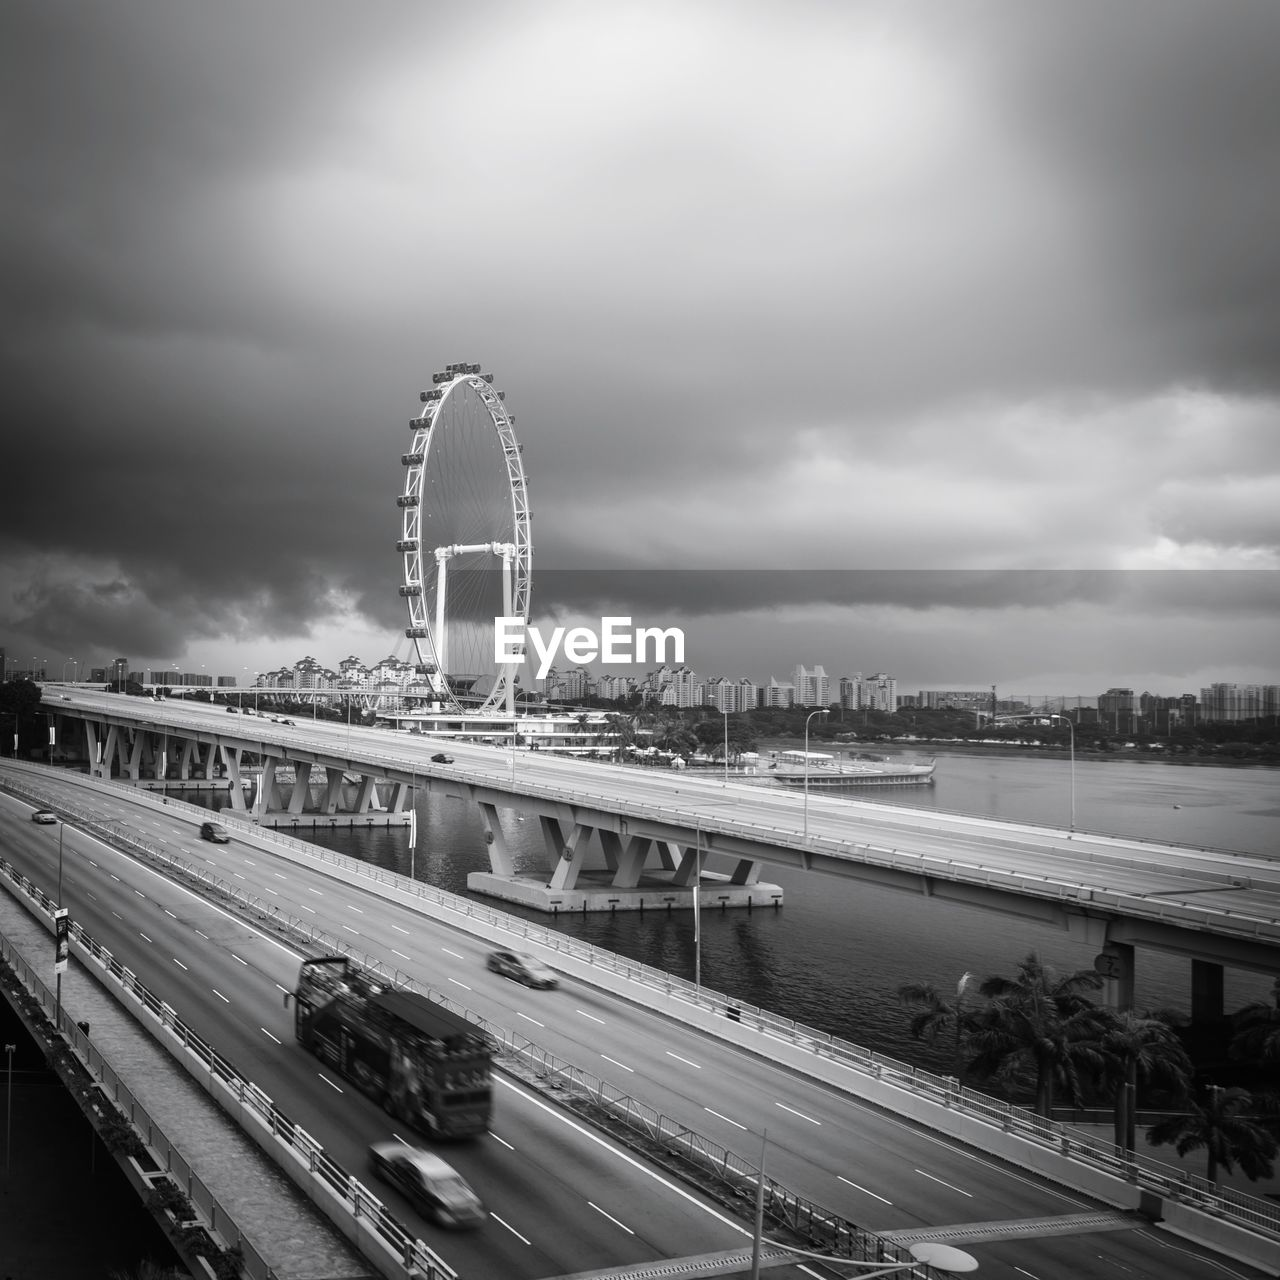 HIGH ANGLE VIEW OF HIGHWAY BRIDGE AGAINST CLOUDY SKY